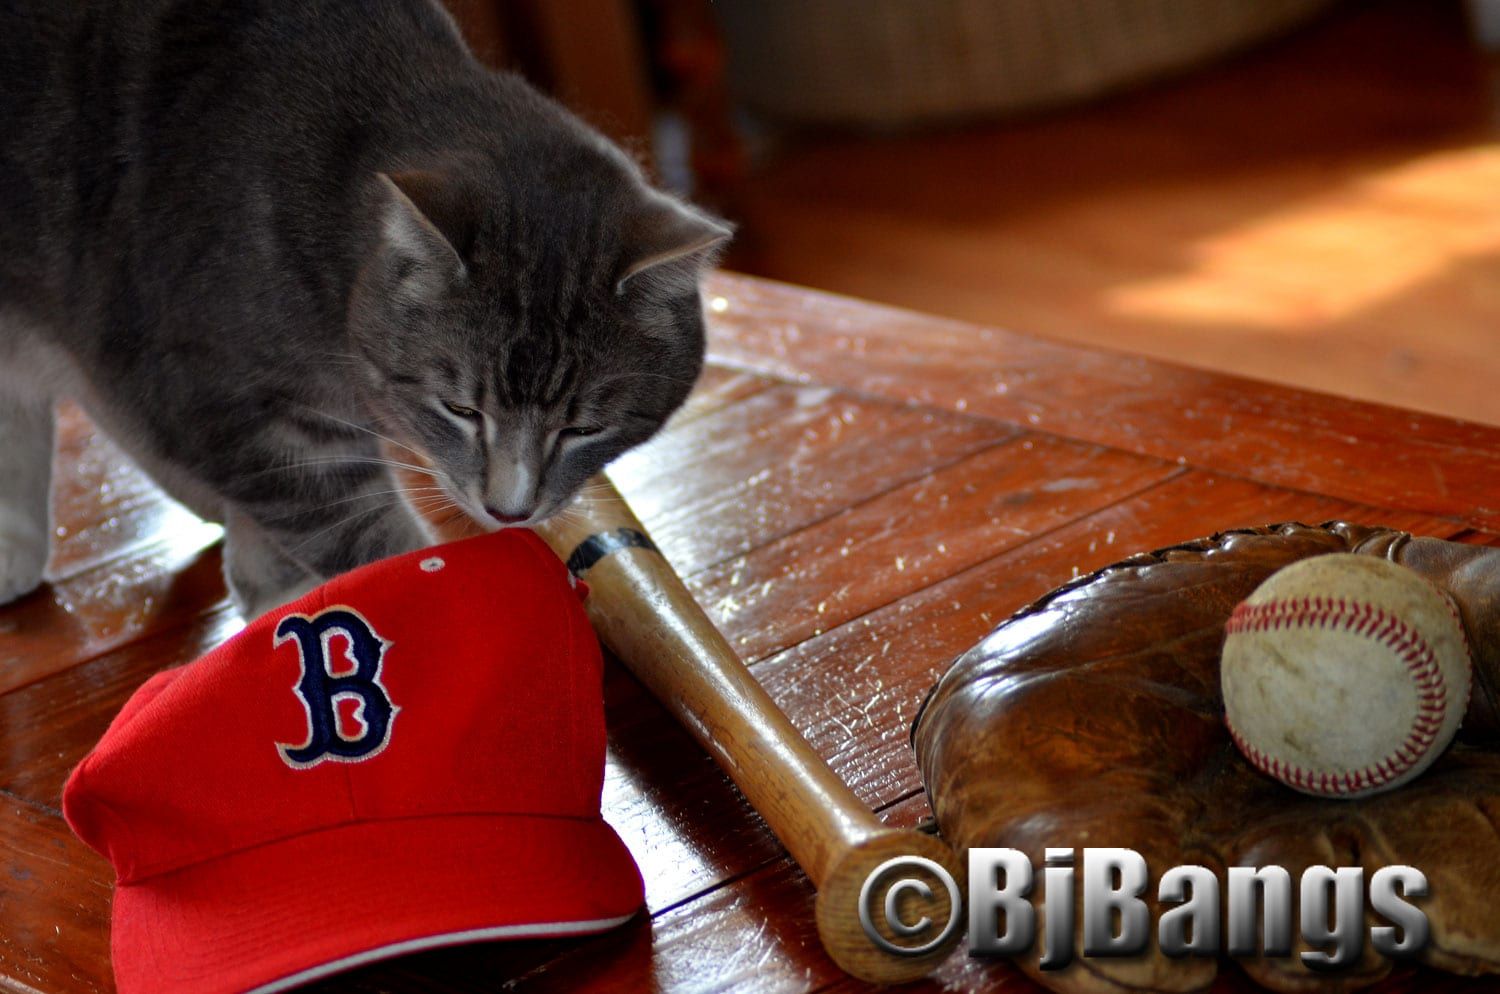 Cat gets ready to bat. Maybe he'll hit a much-needed home run for the #Boston Red Sox